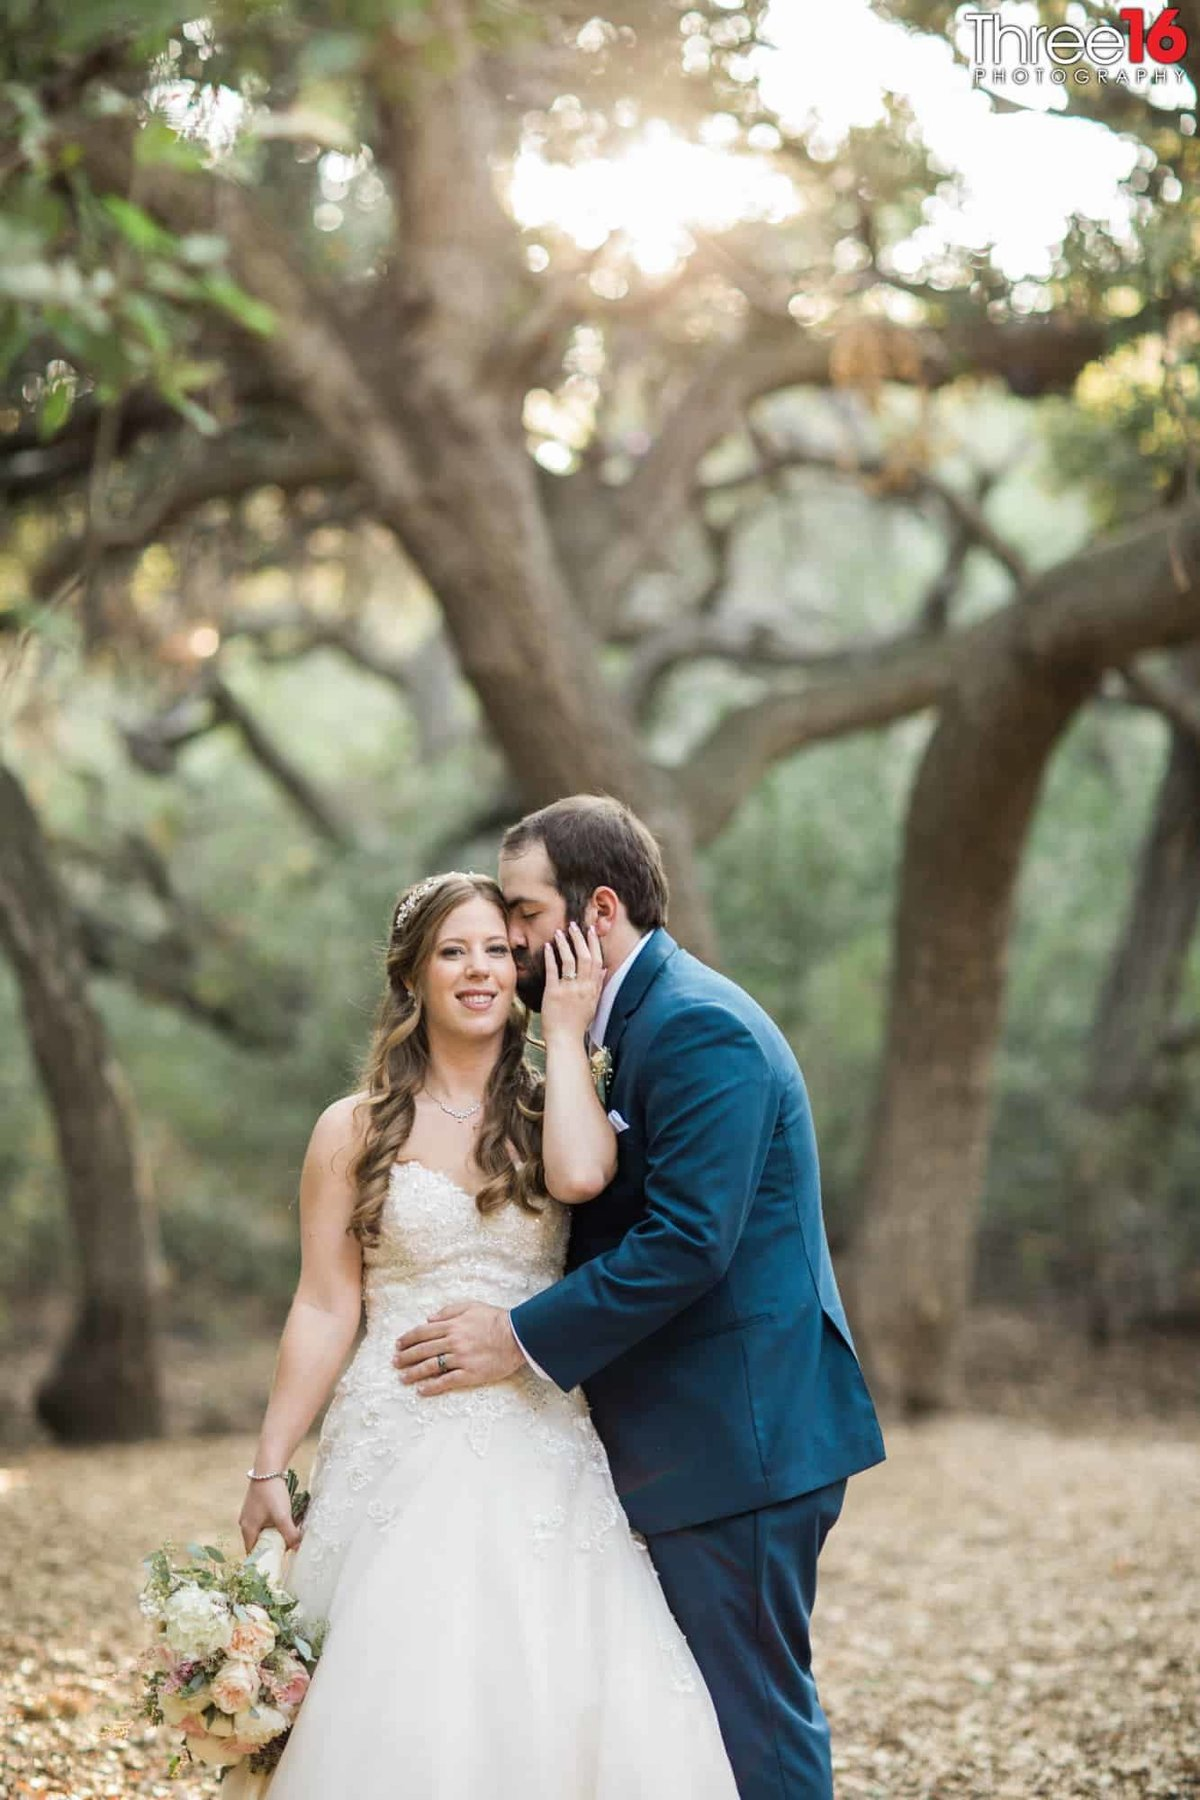 Oak Canyon Nature Center Wedding Anaheim California wedding photographer Ceremony Bride and Groom Outside wedding_1